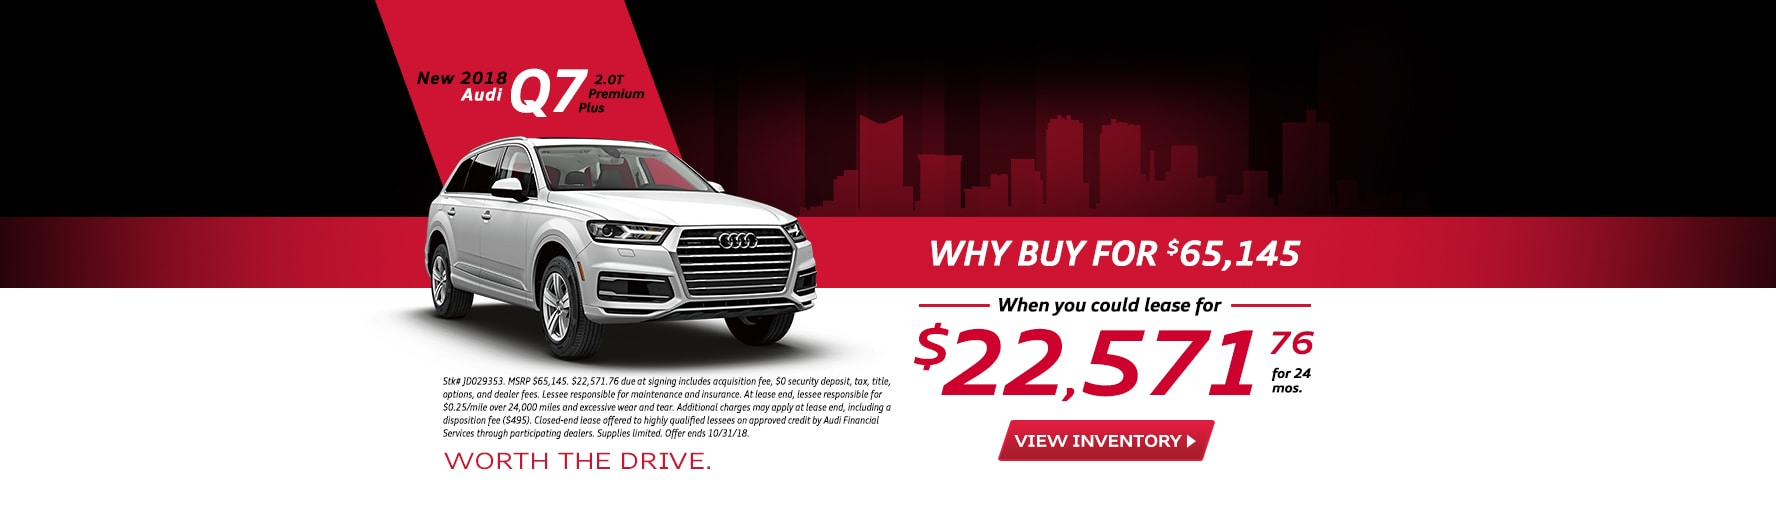 Audi Dealer Fort Worth TX Audi Fort Worth - Audi euless